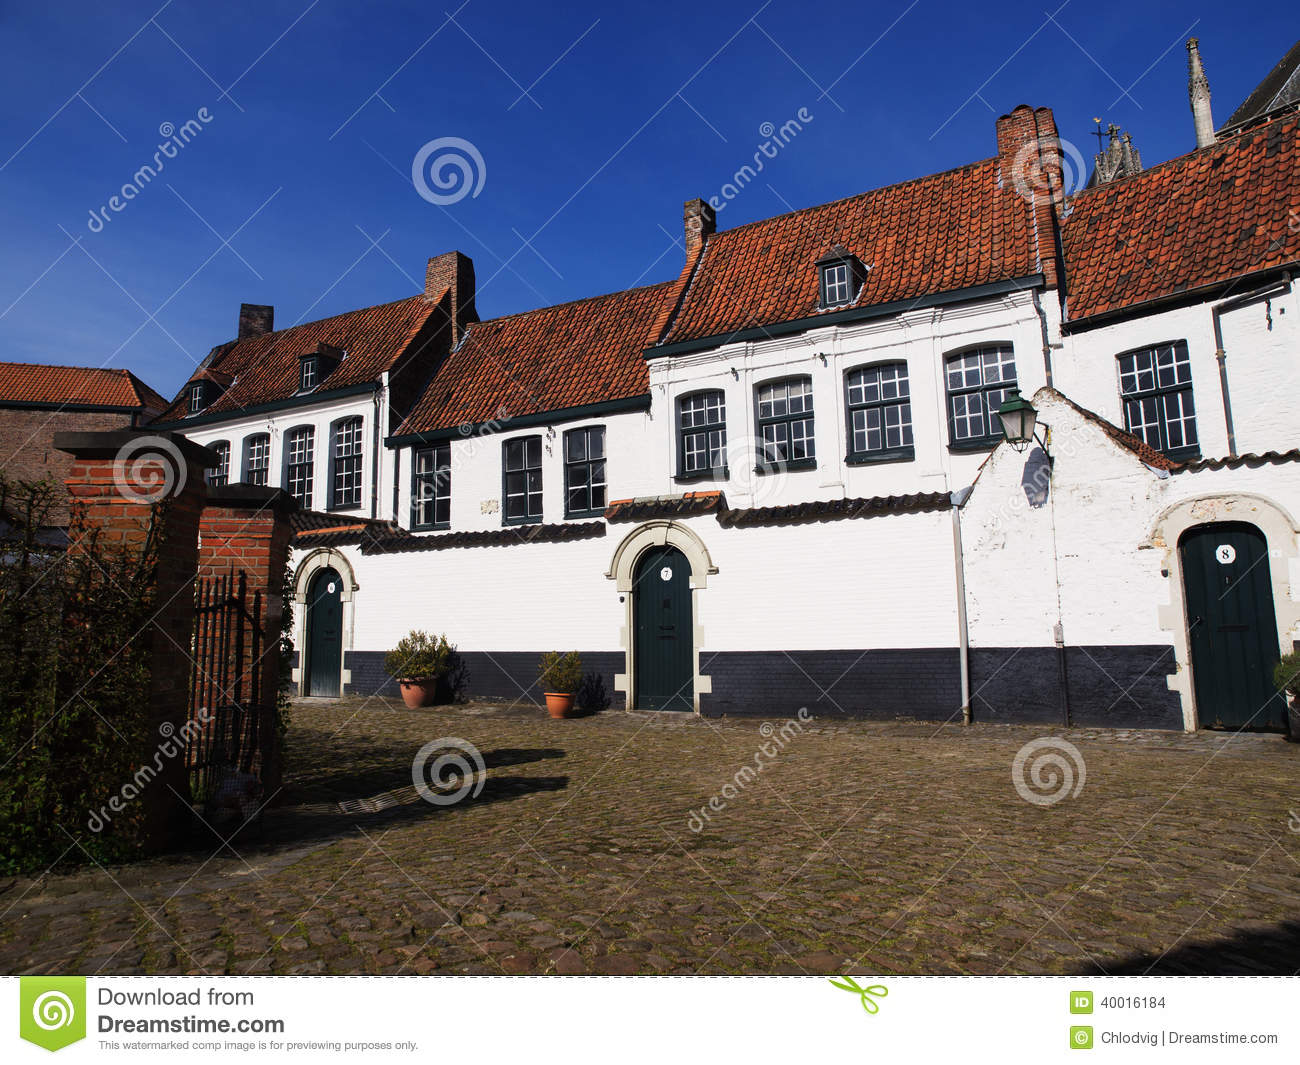 Domy w Beguinage w Belgia